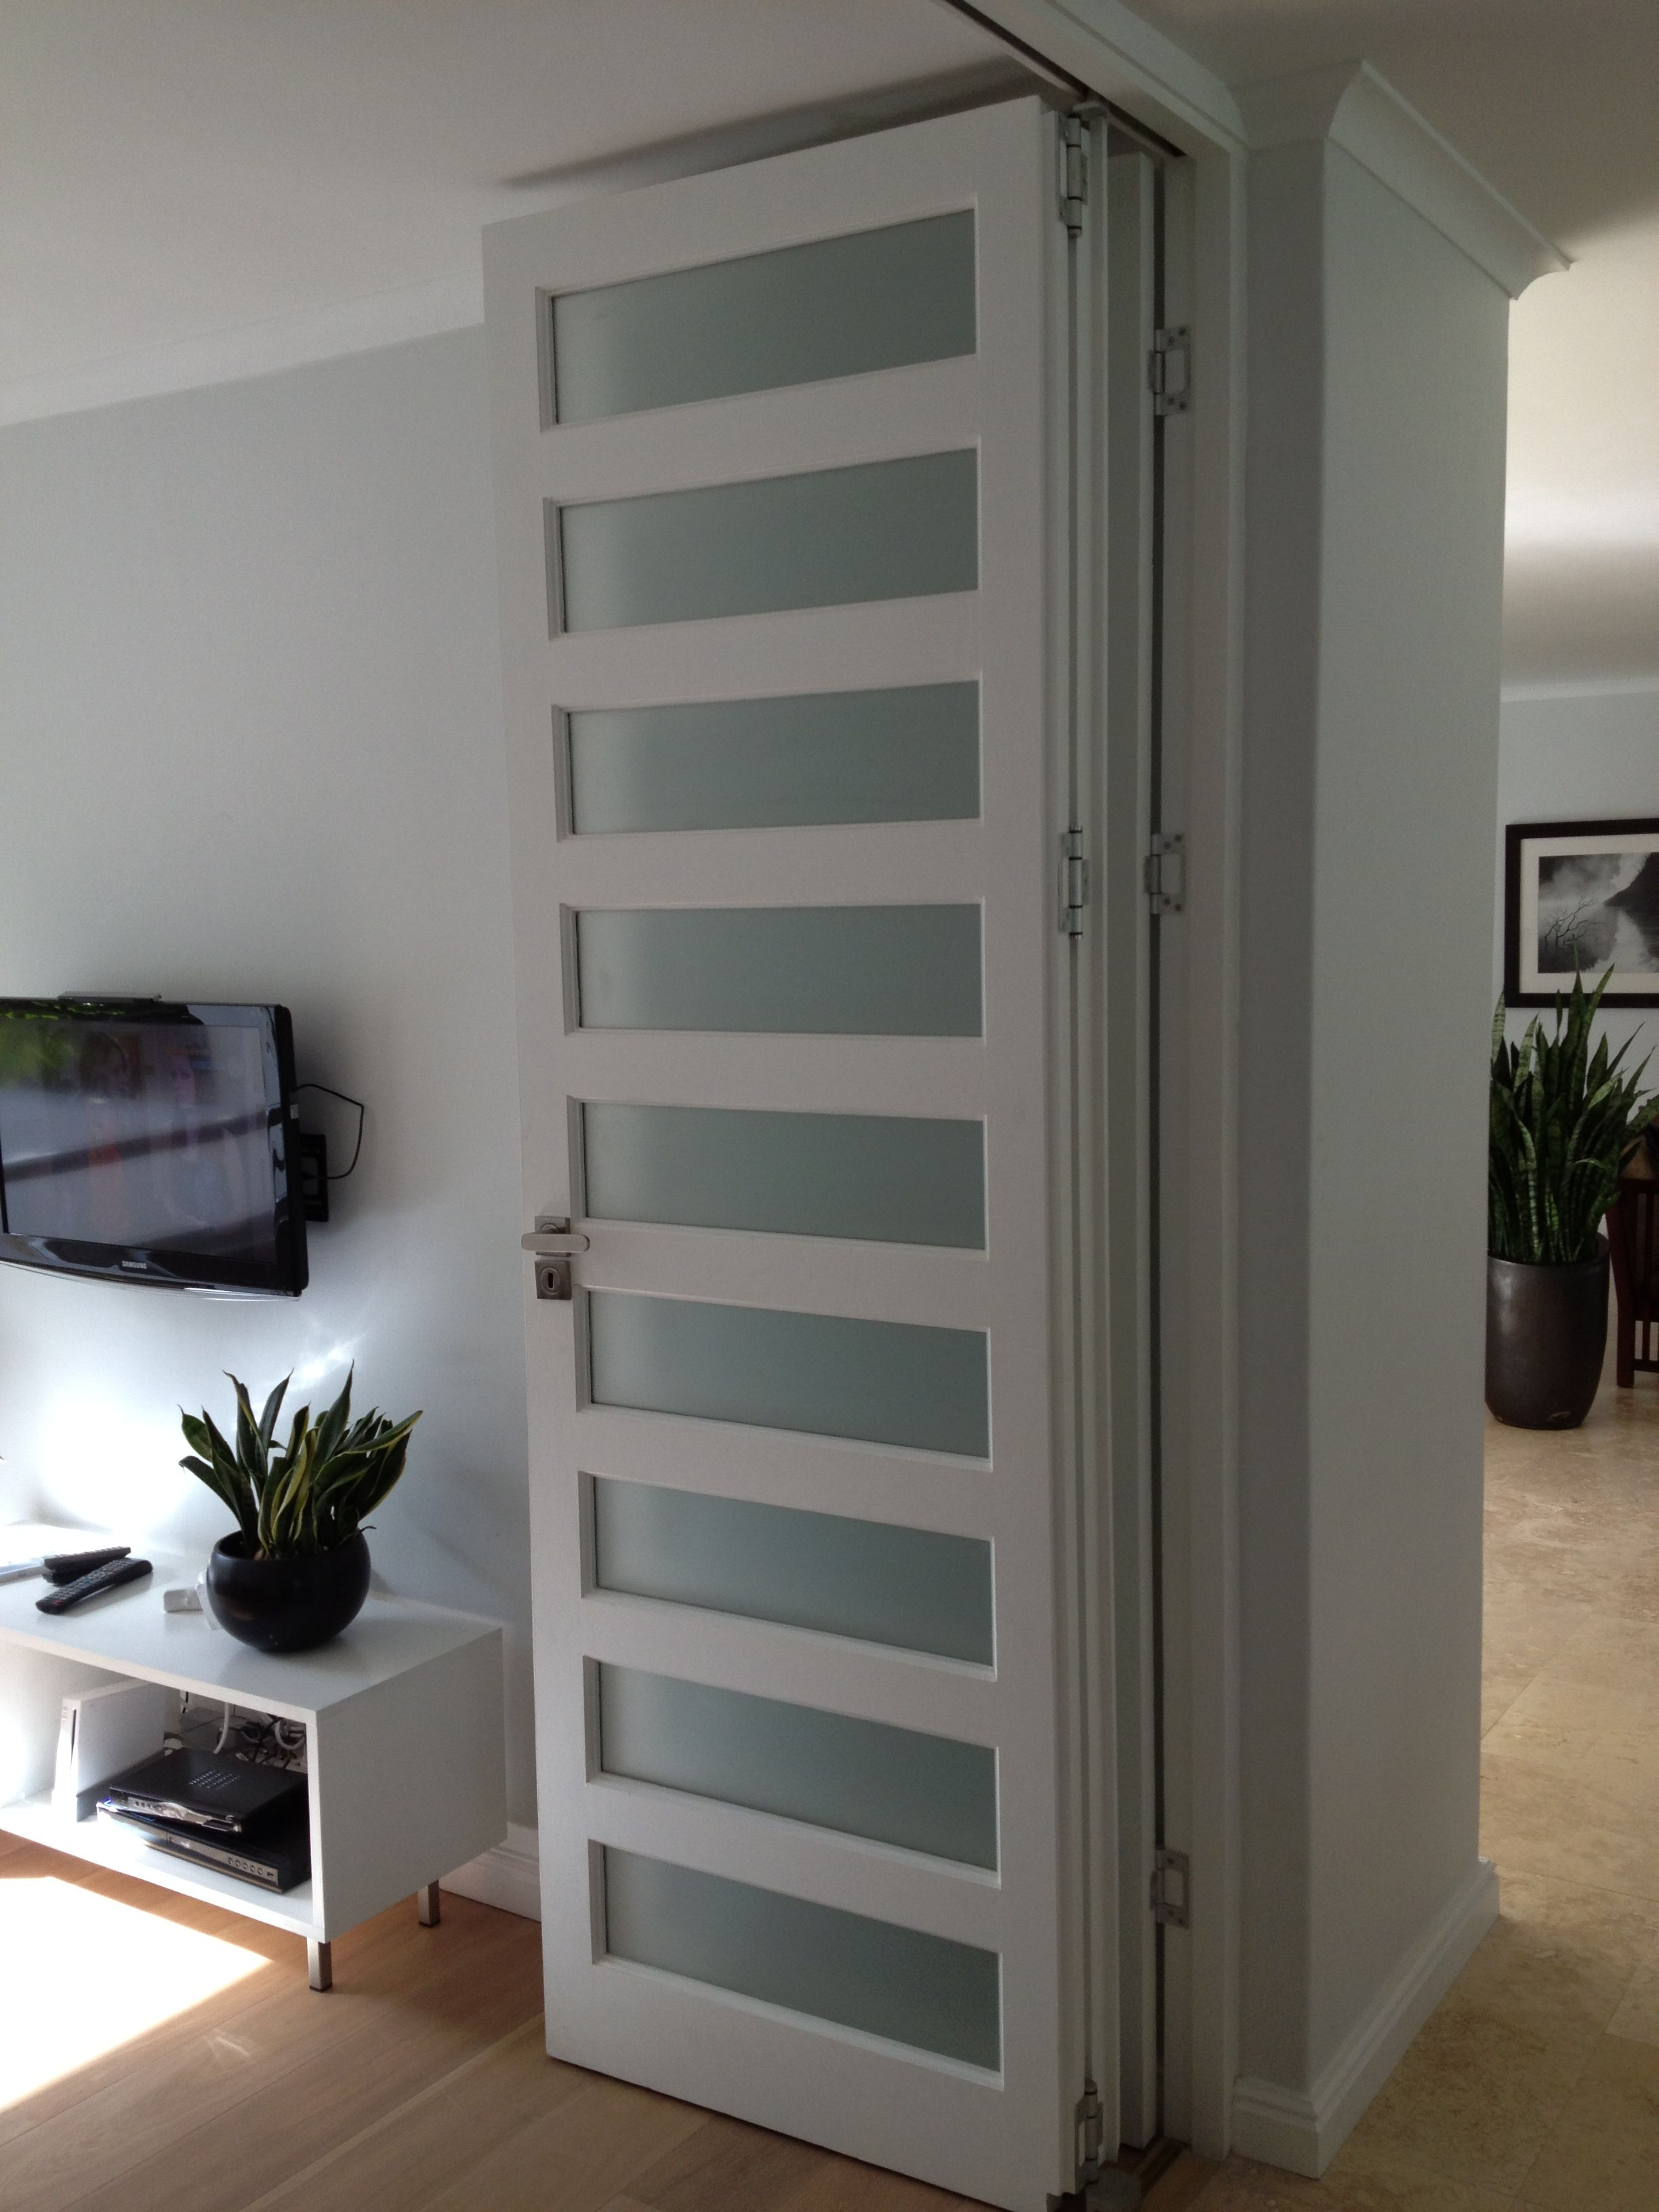 folding room divider by Door and Window Decor